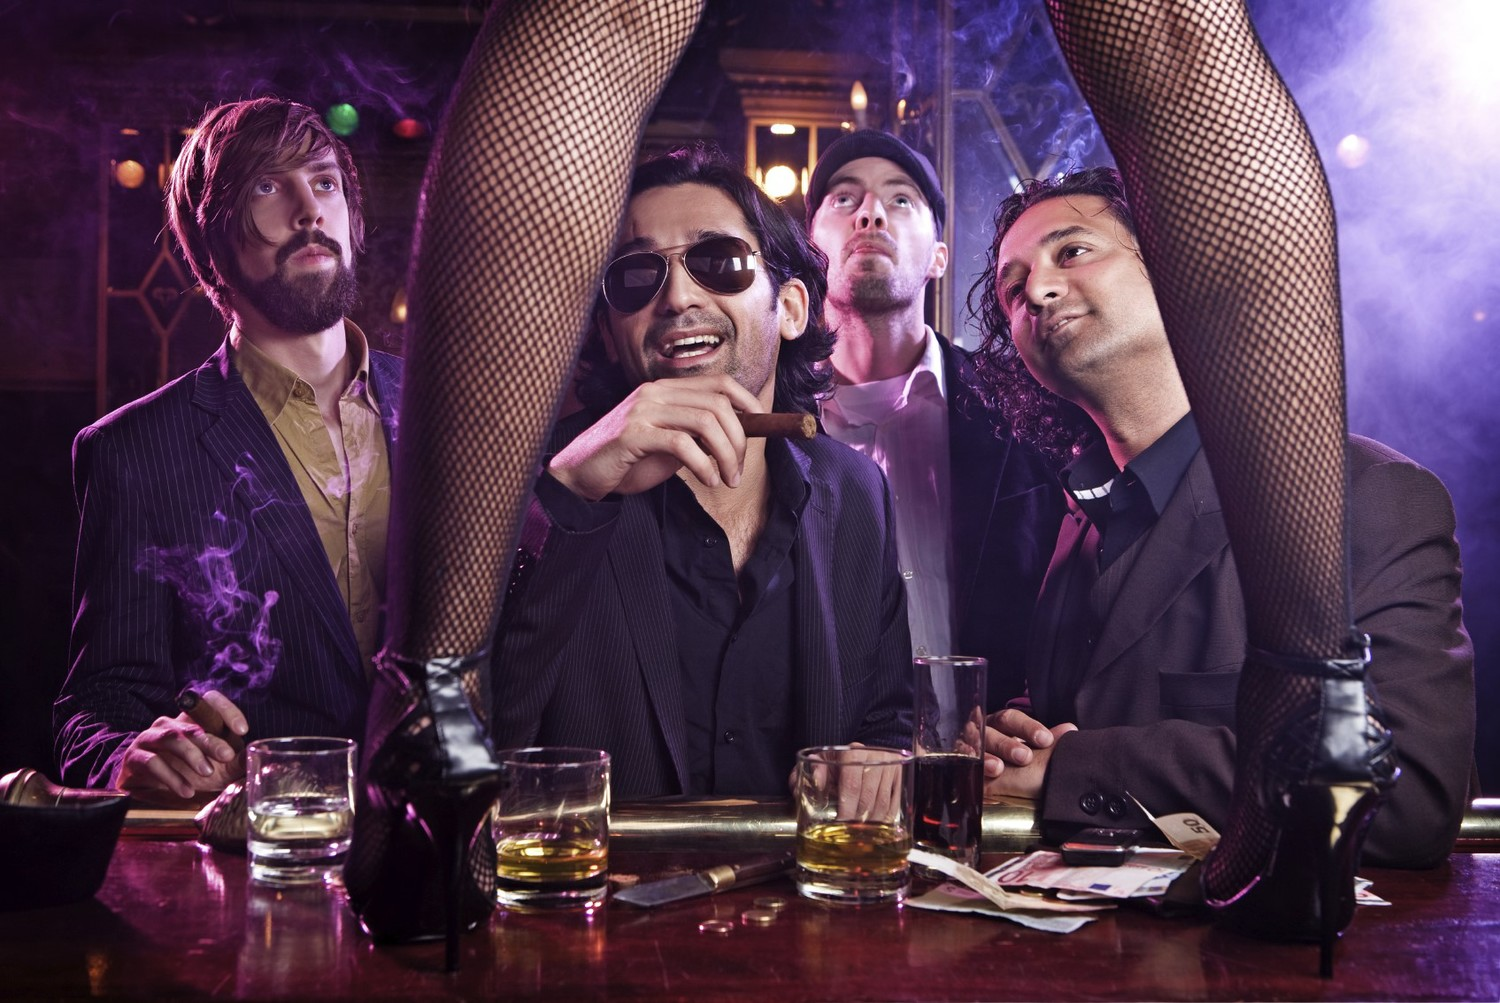 Guy's Night Out - The ultimate night of Booze, Broads and bachelorhood